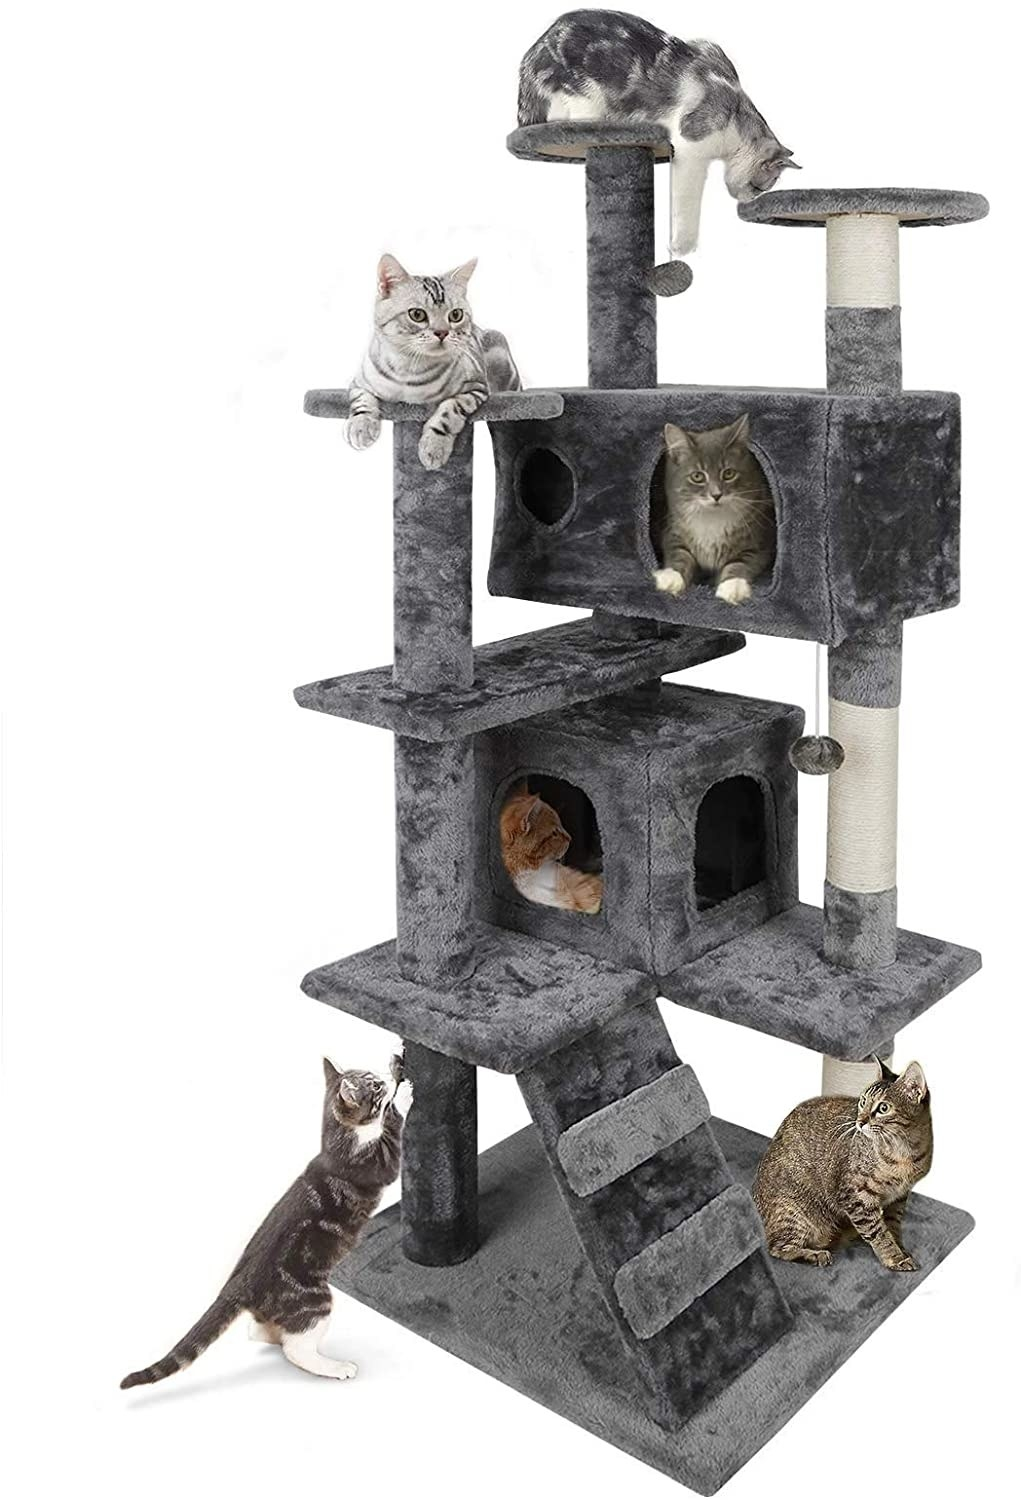 The gray cat tower